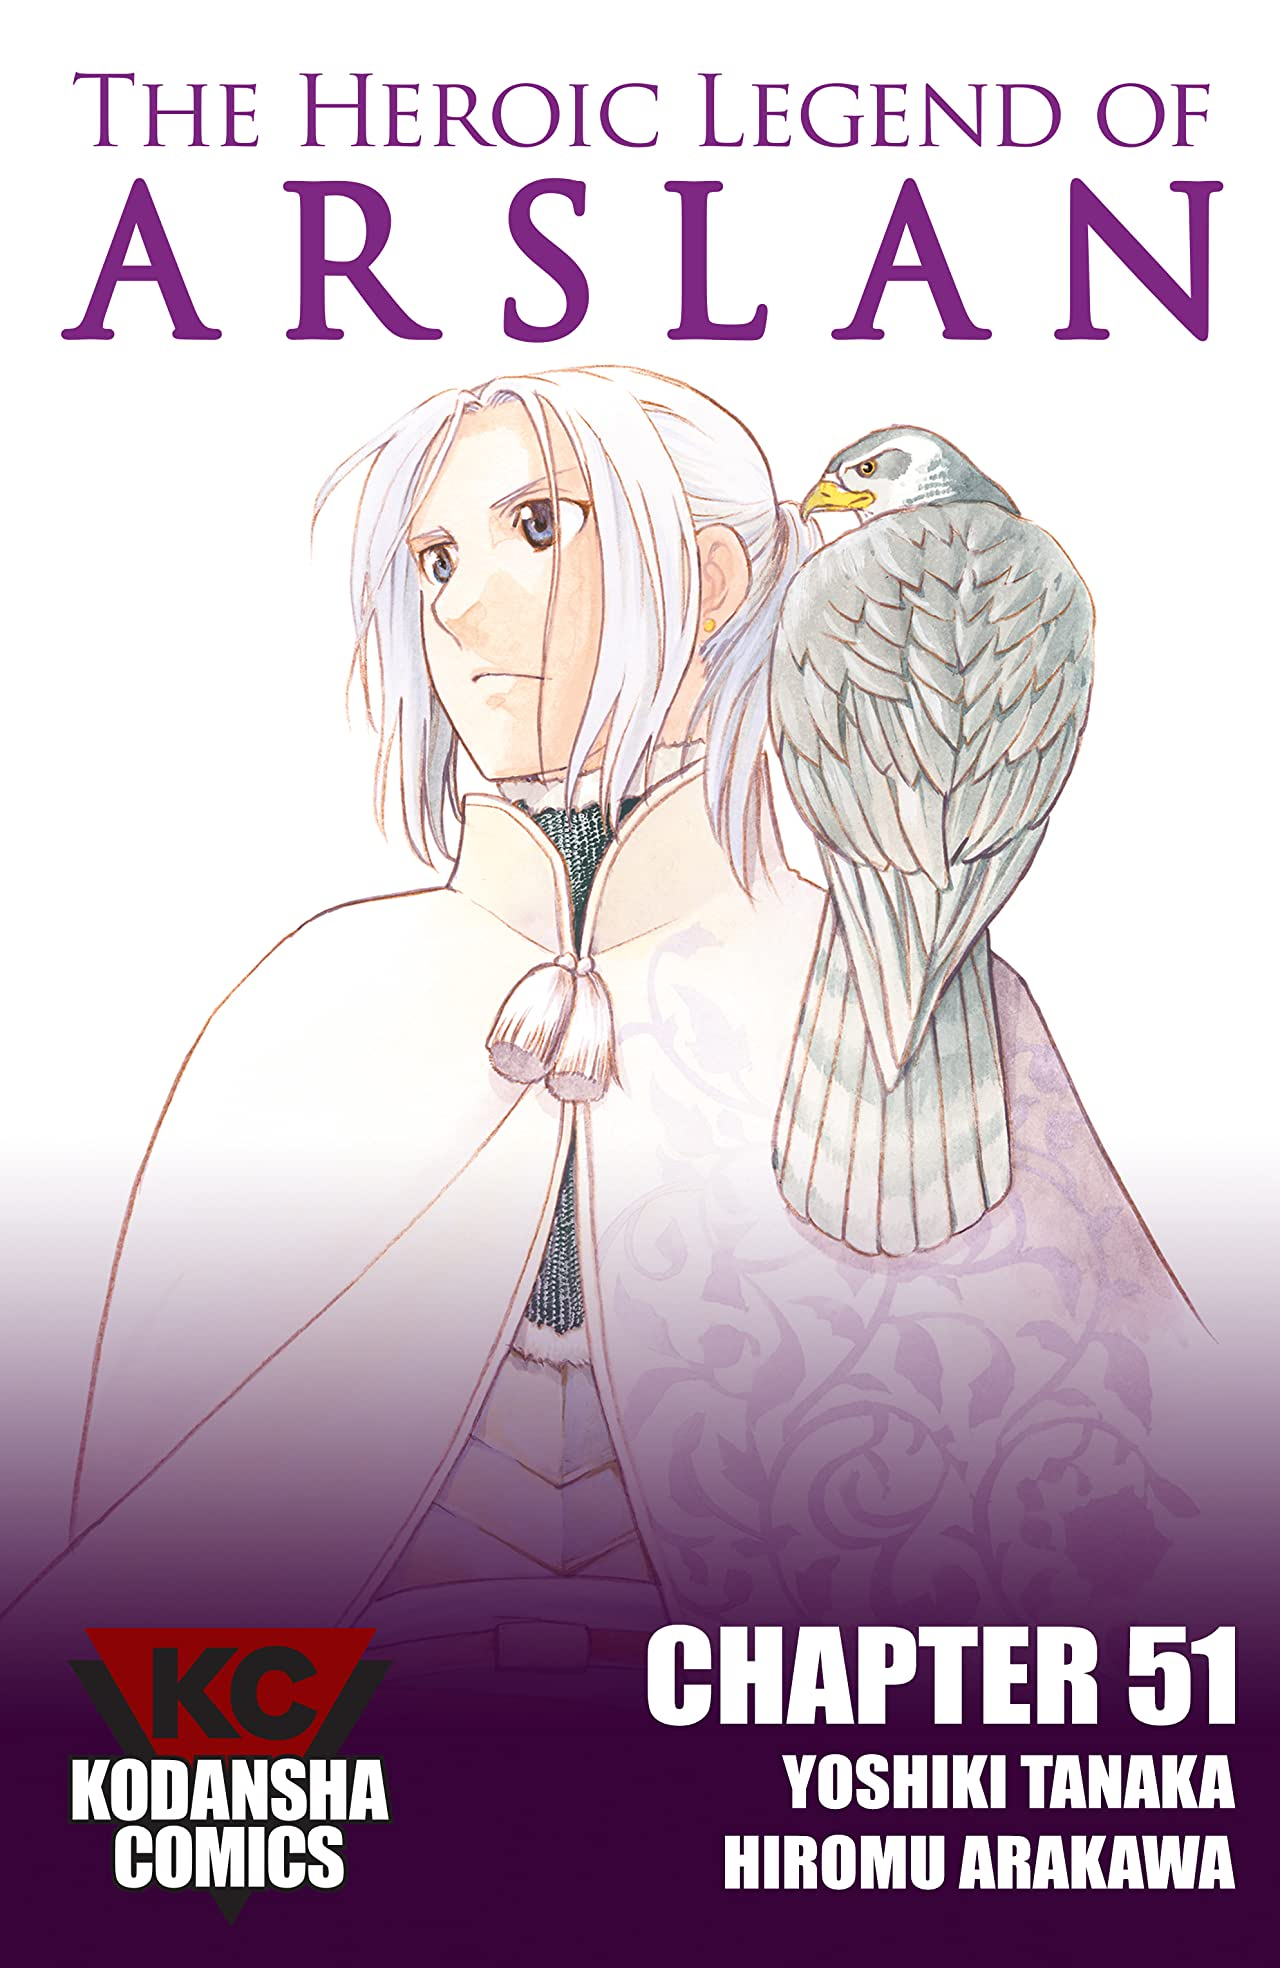 The Heroic Legend of Arslan #51